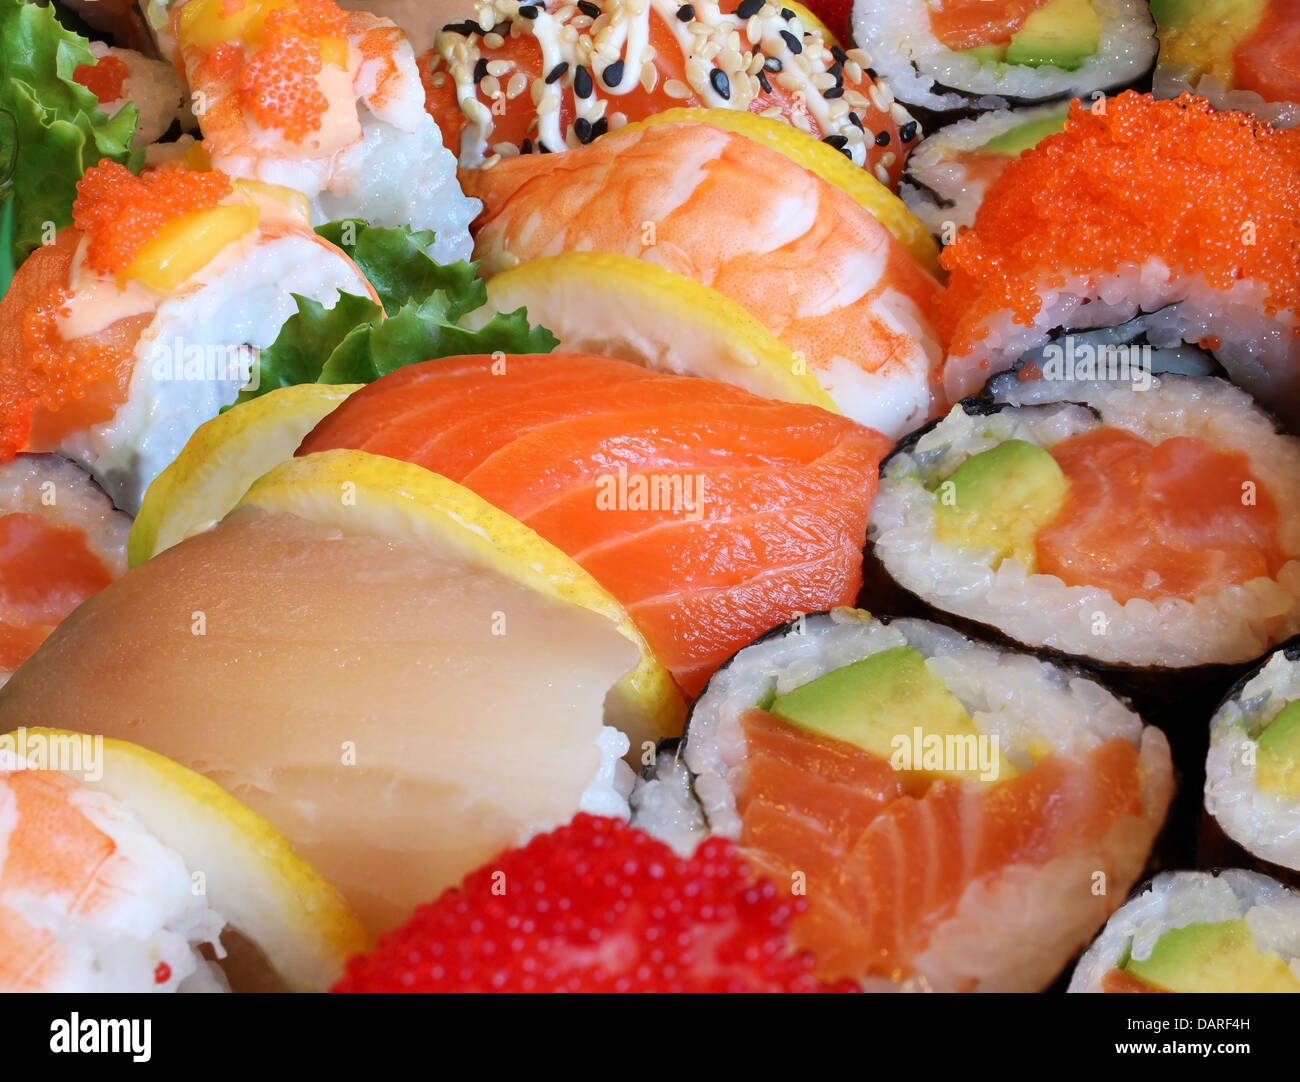 Japanese sushi close up with a variety of delicious prepared fresh raw fish and seafood as salmon shrimp and caviar - Stock Image